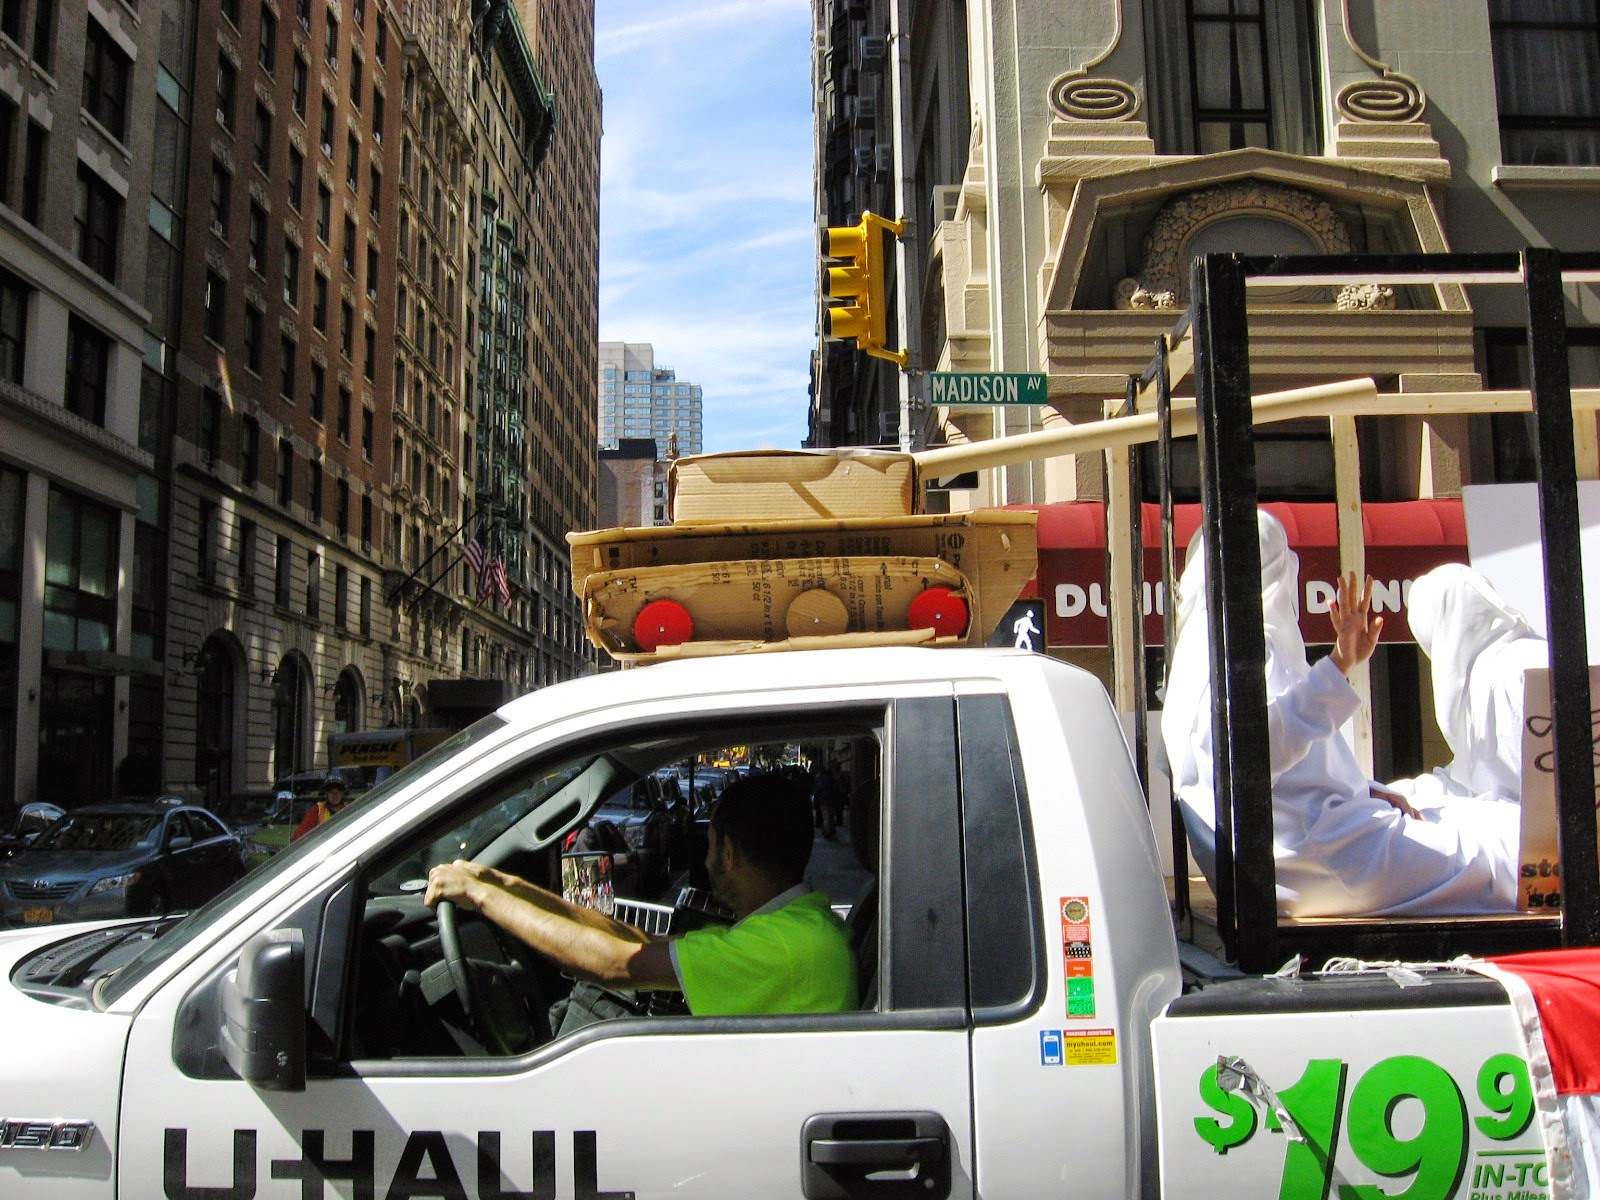 Urban infidel isis cages first seen rolling down madison avenue at the 2014 muslim day parade